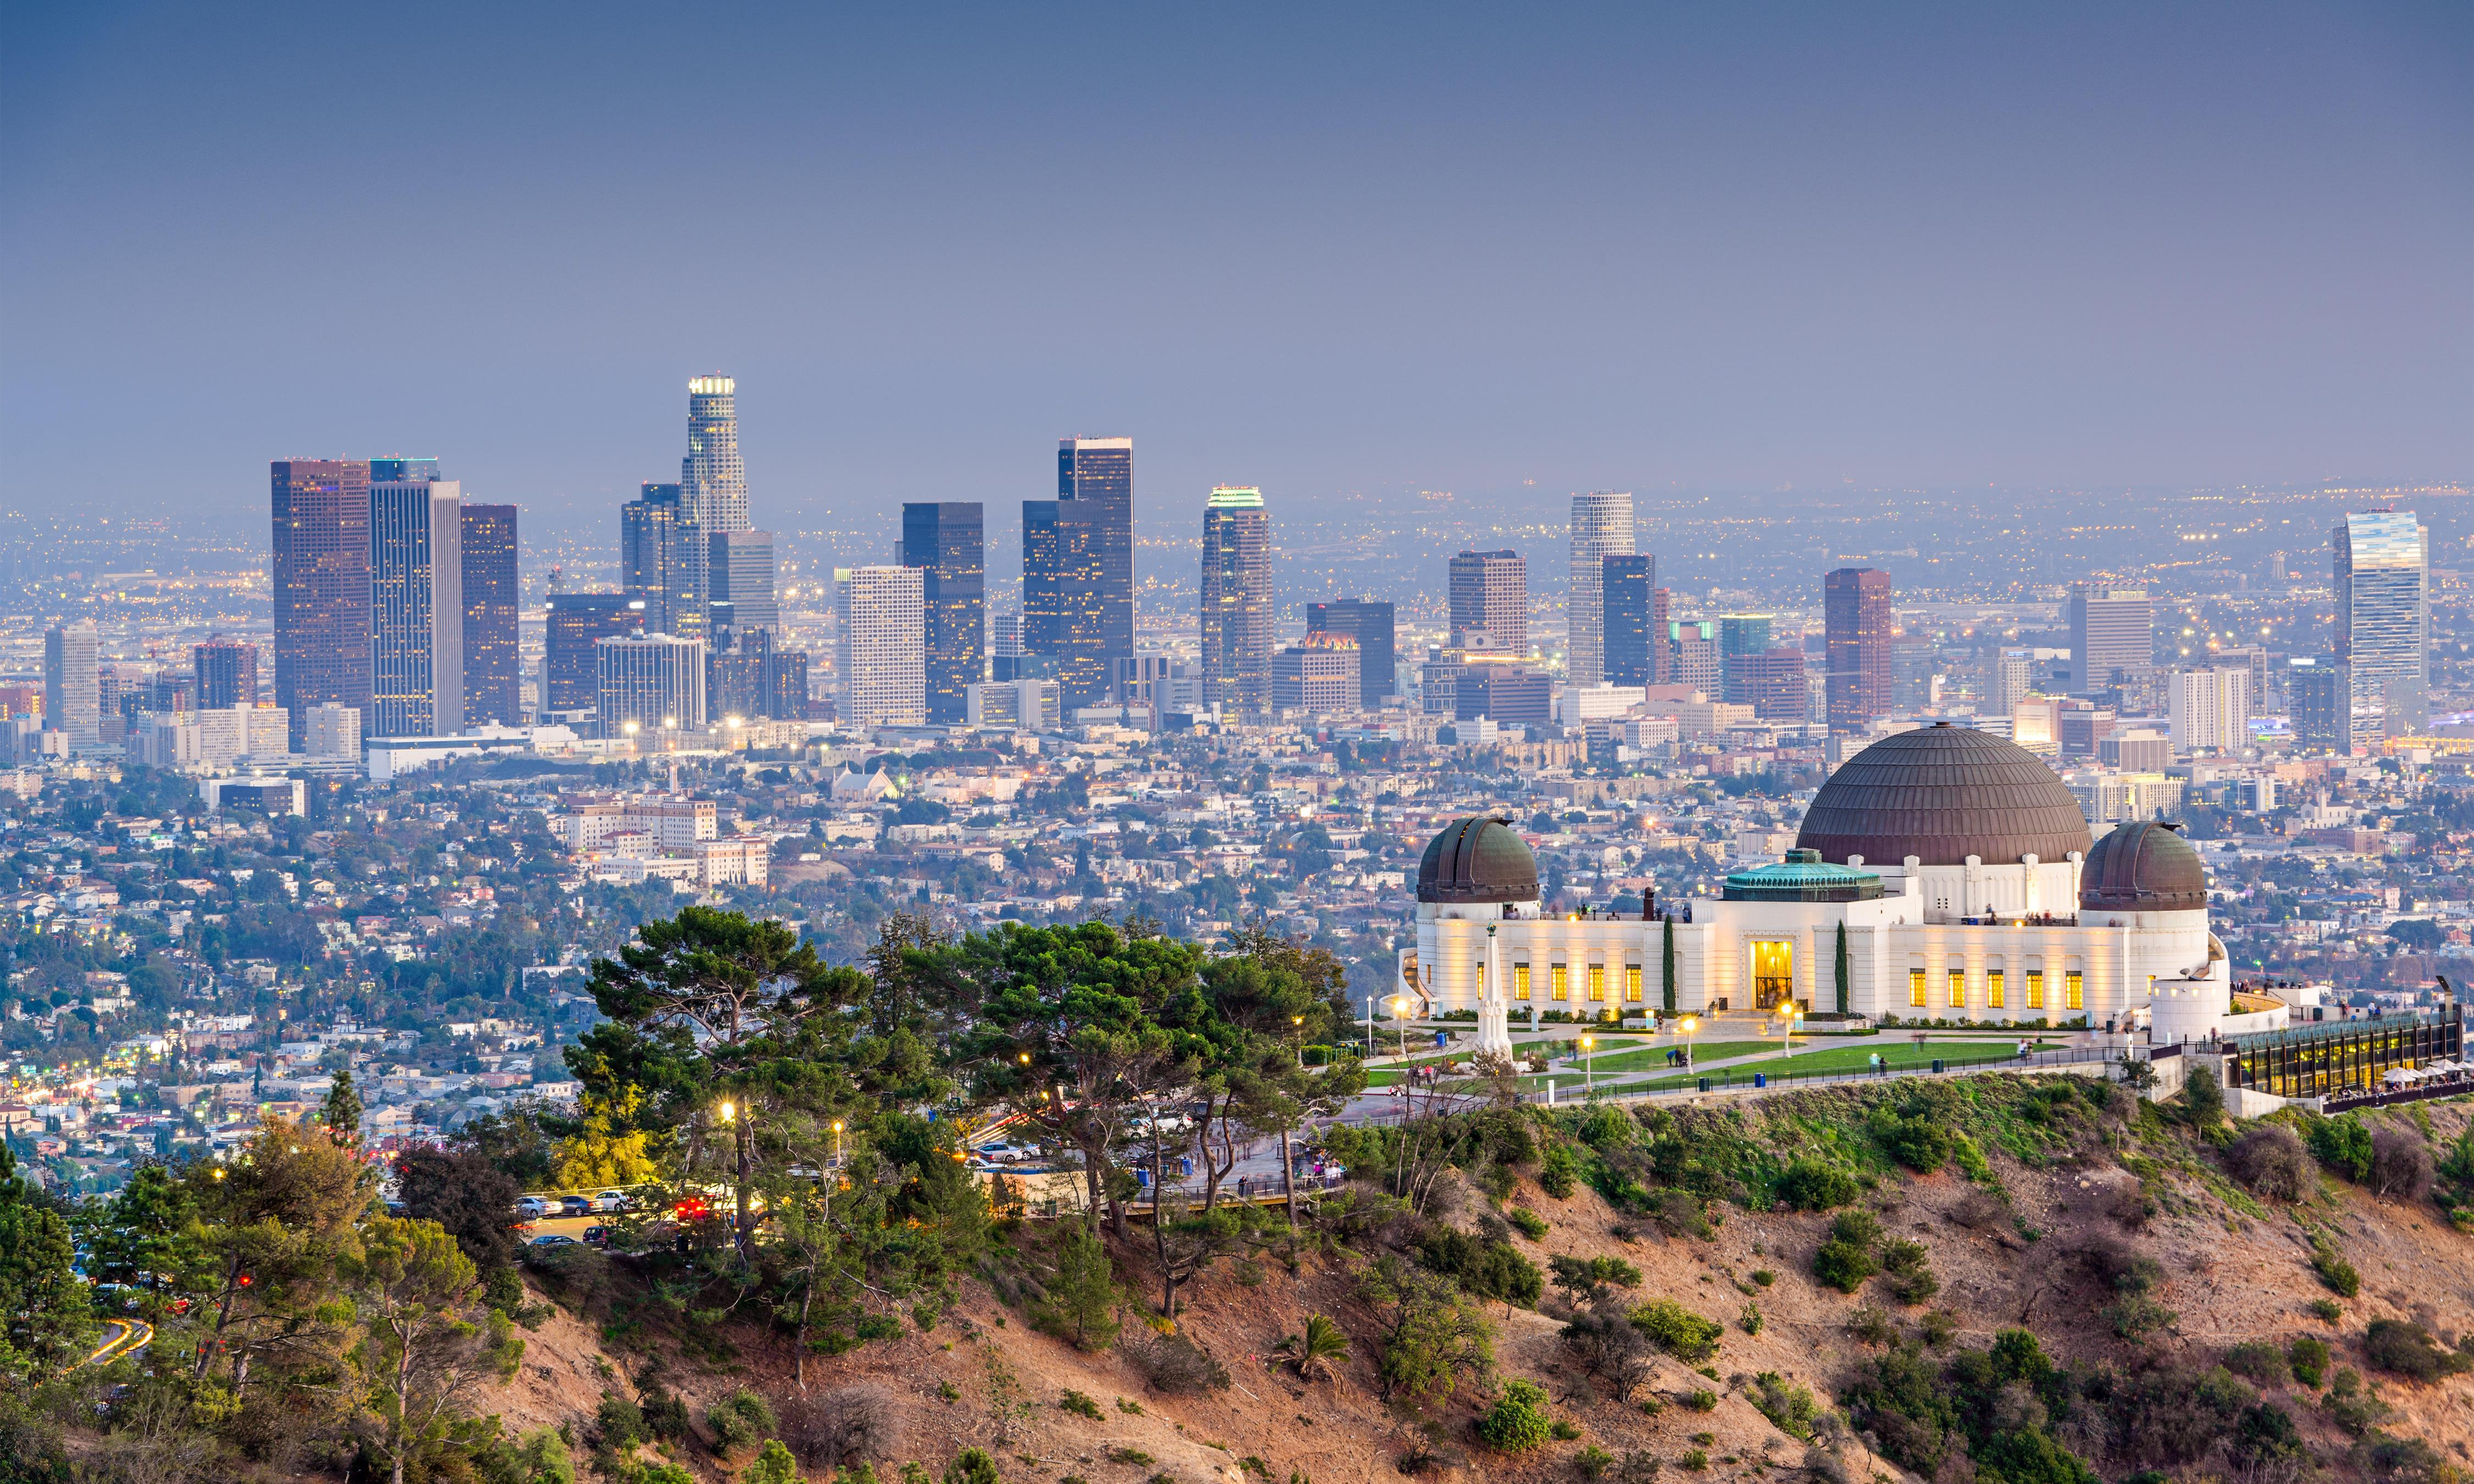 California home to 91 of America's 100 most expensive zip codes